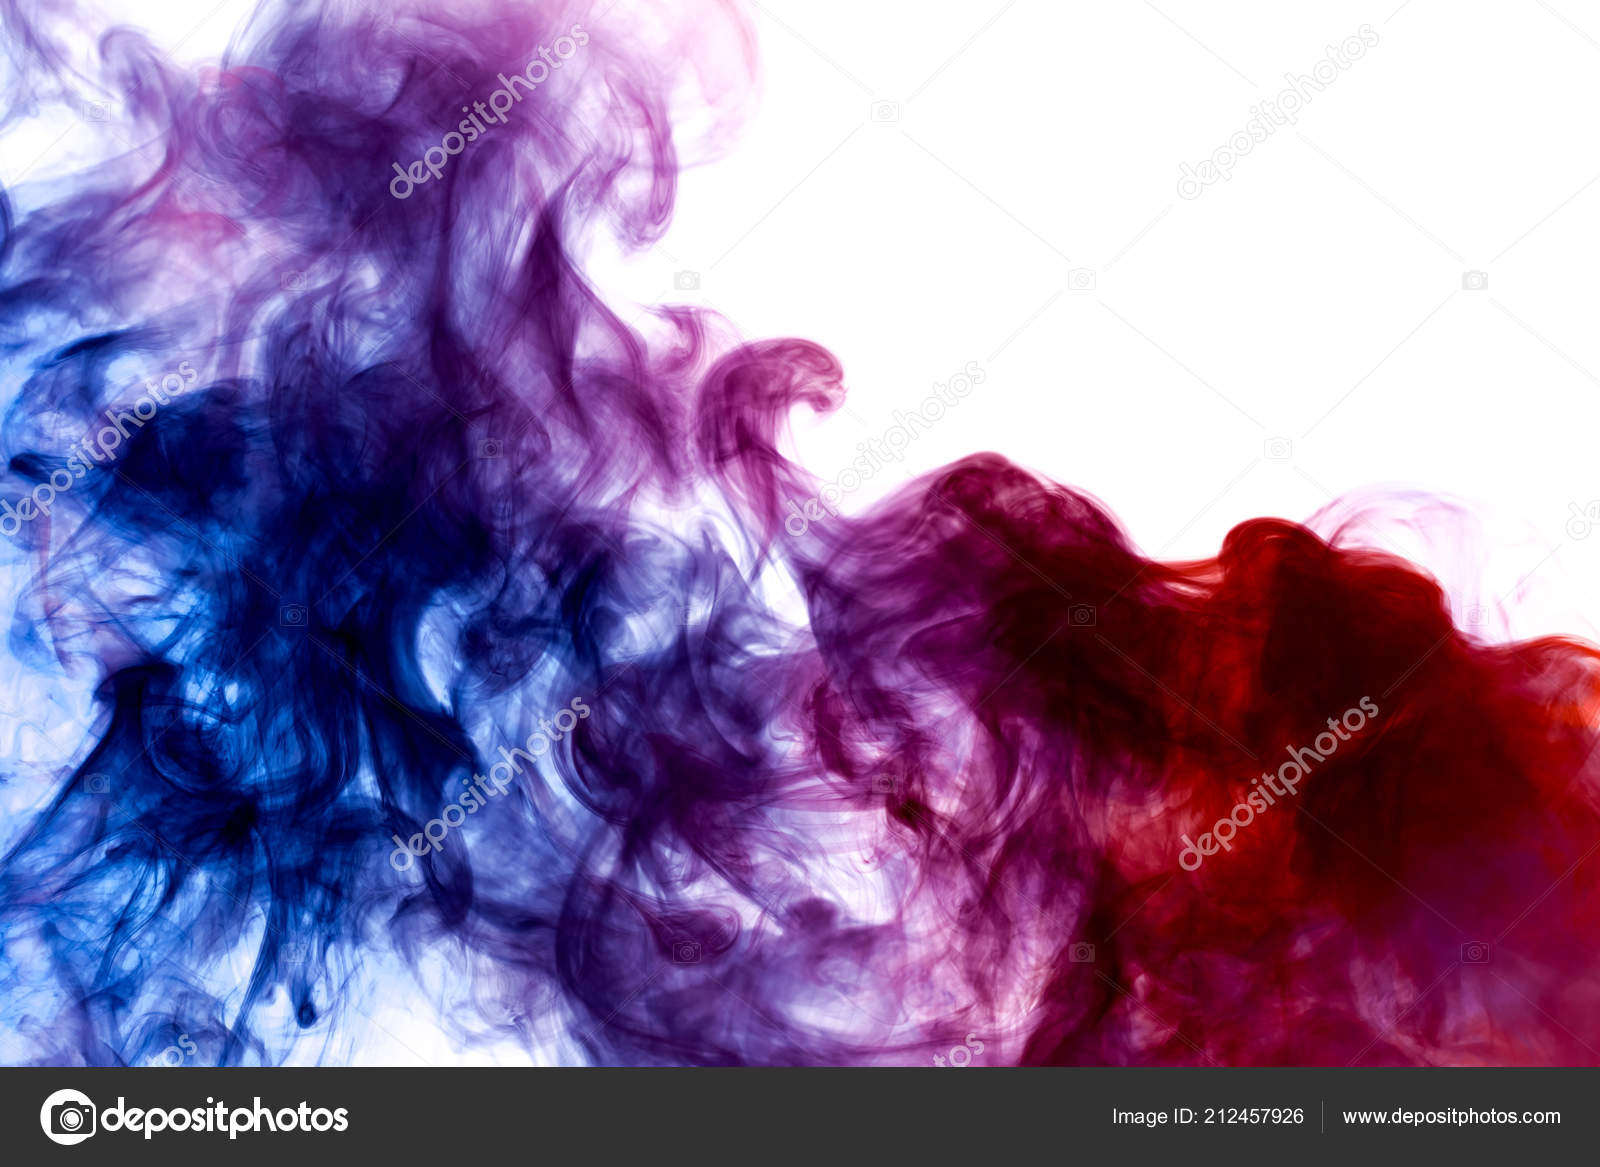 cloud pink red blue smoke white isolated background background smoke stock photo c everyonensk 212457926 cloud pink red blue smoke white isolated background background smoke stock photo c everyonensk 212457926